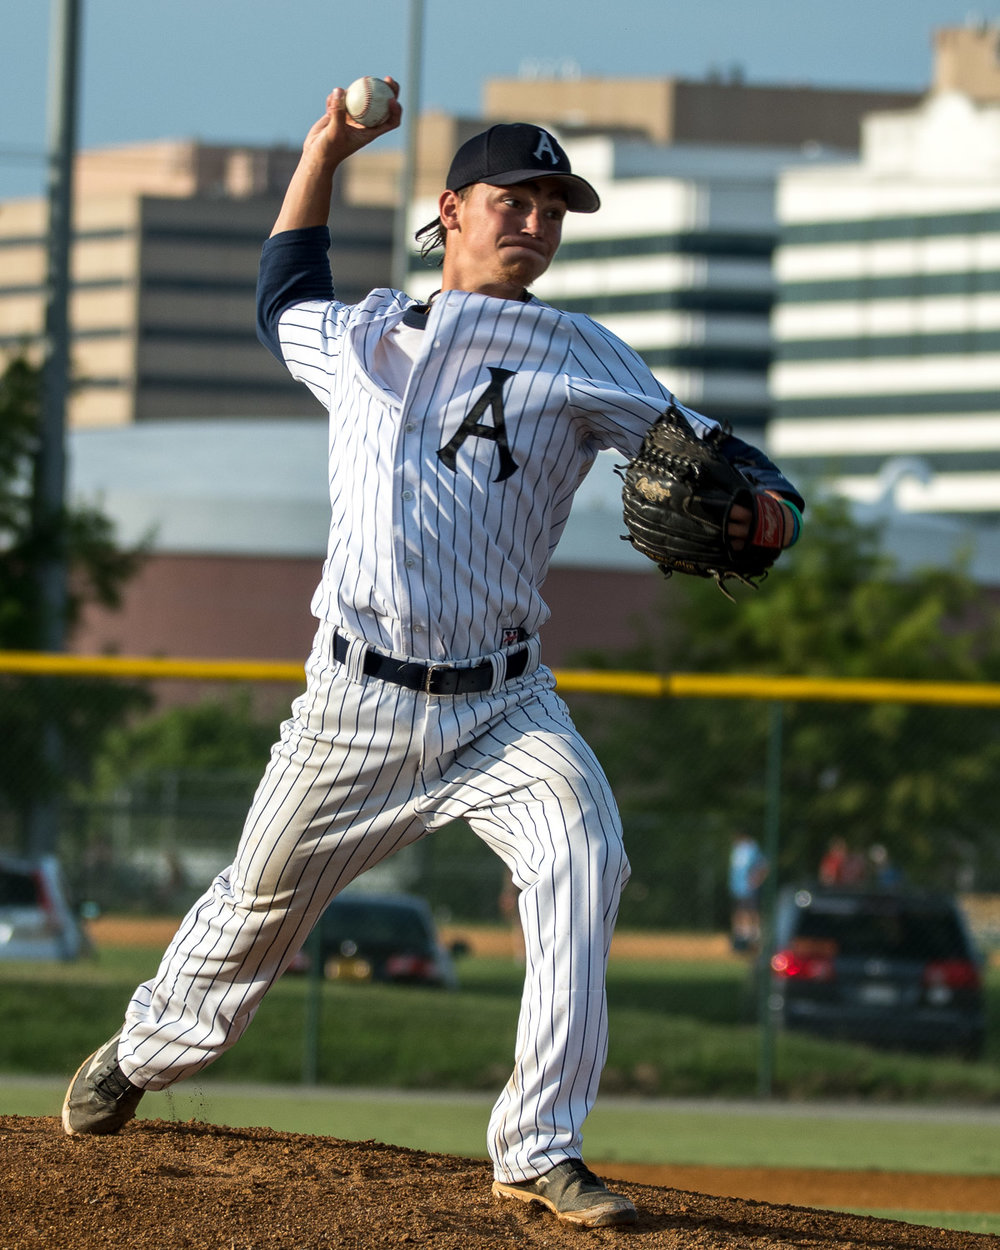 20160707 - DC Grays vs Aces-2269.jpg